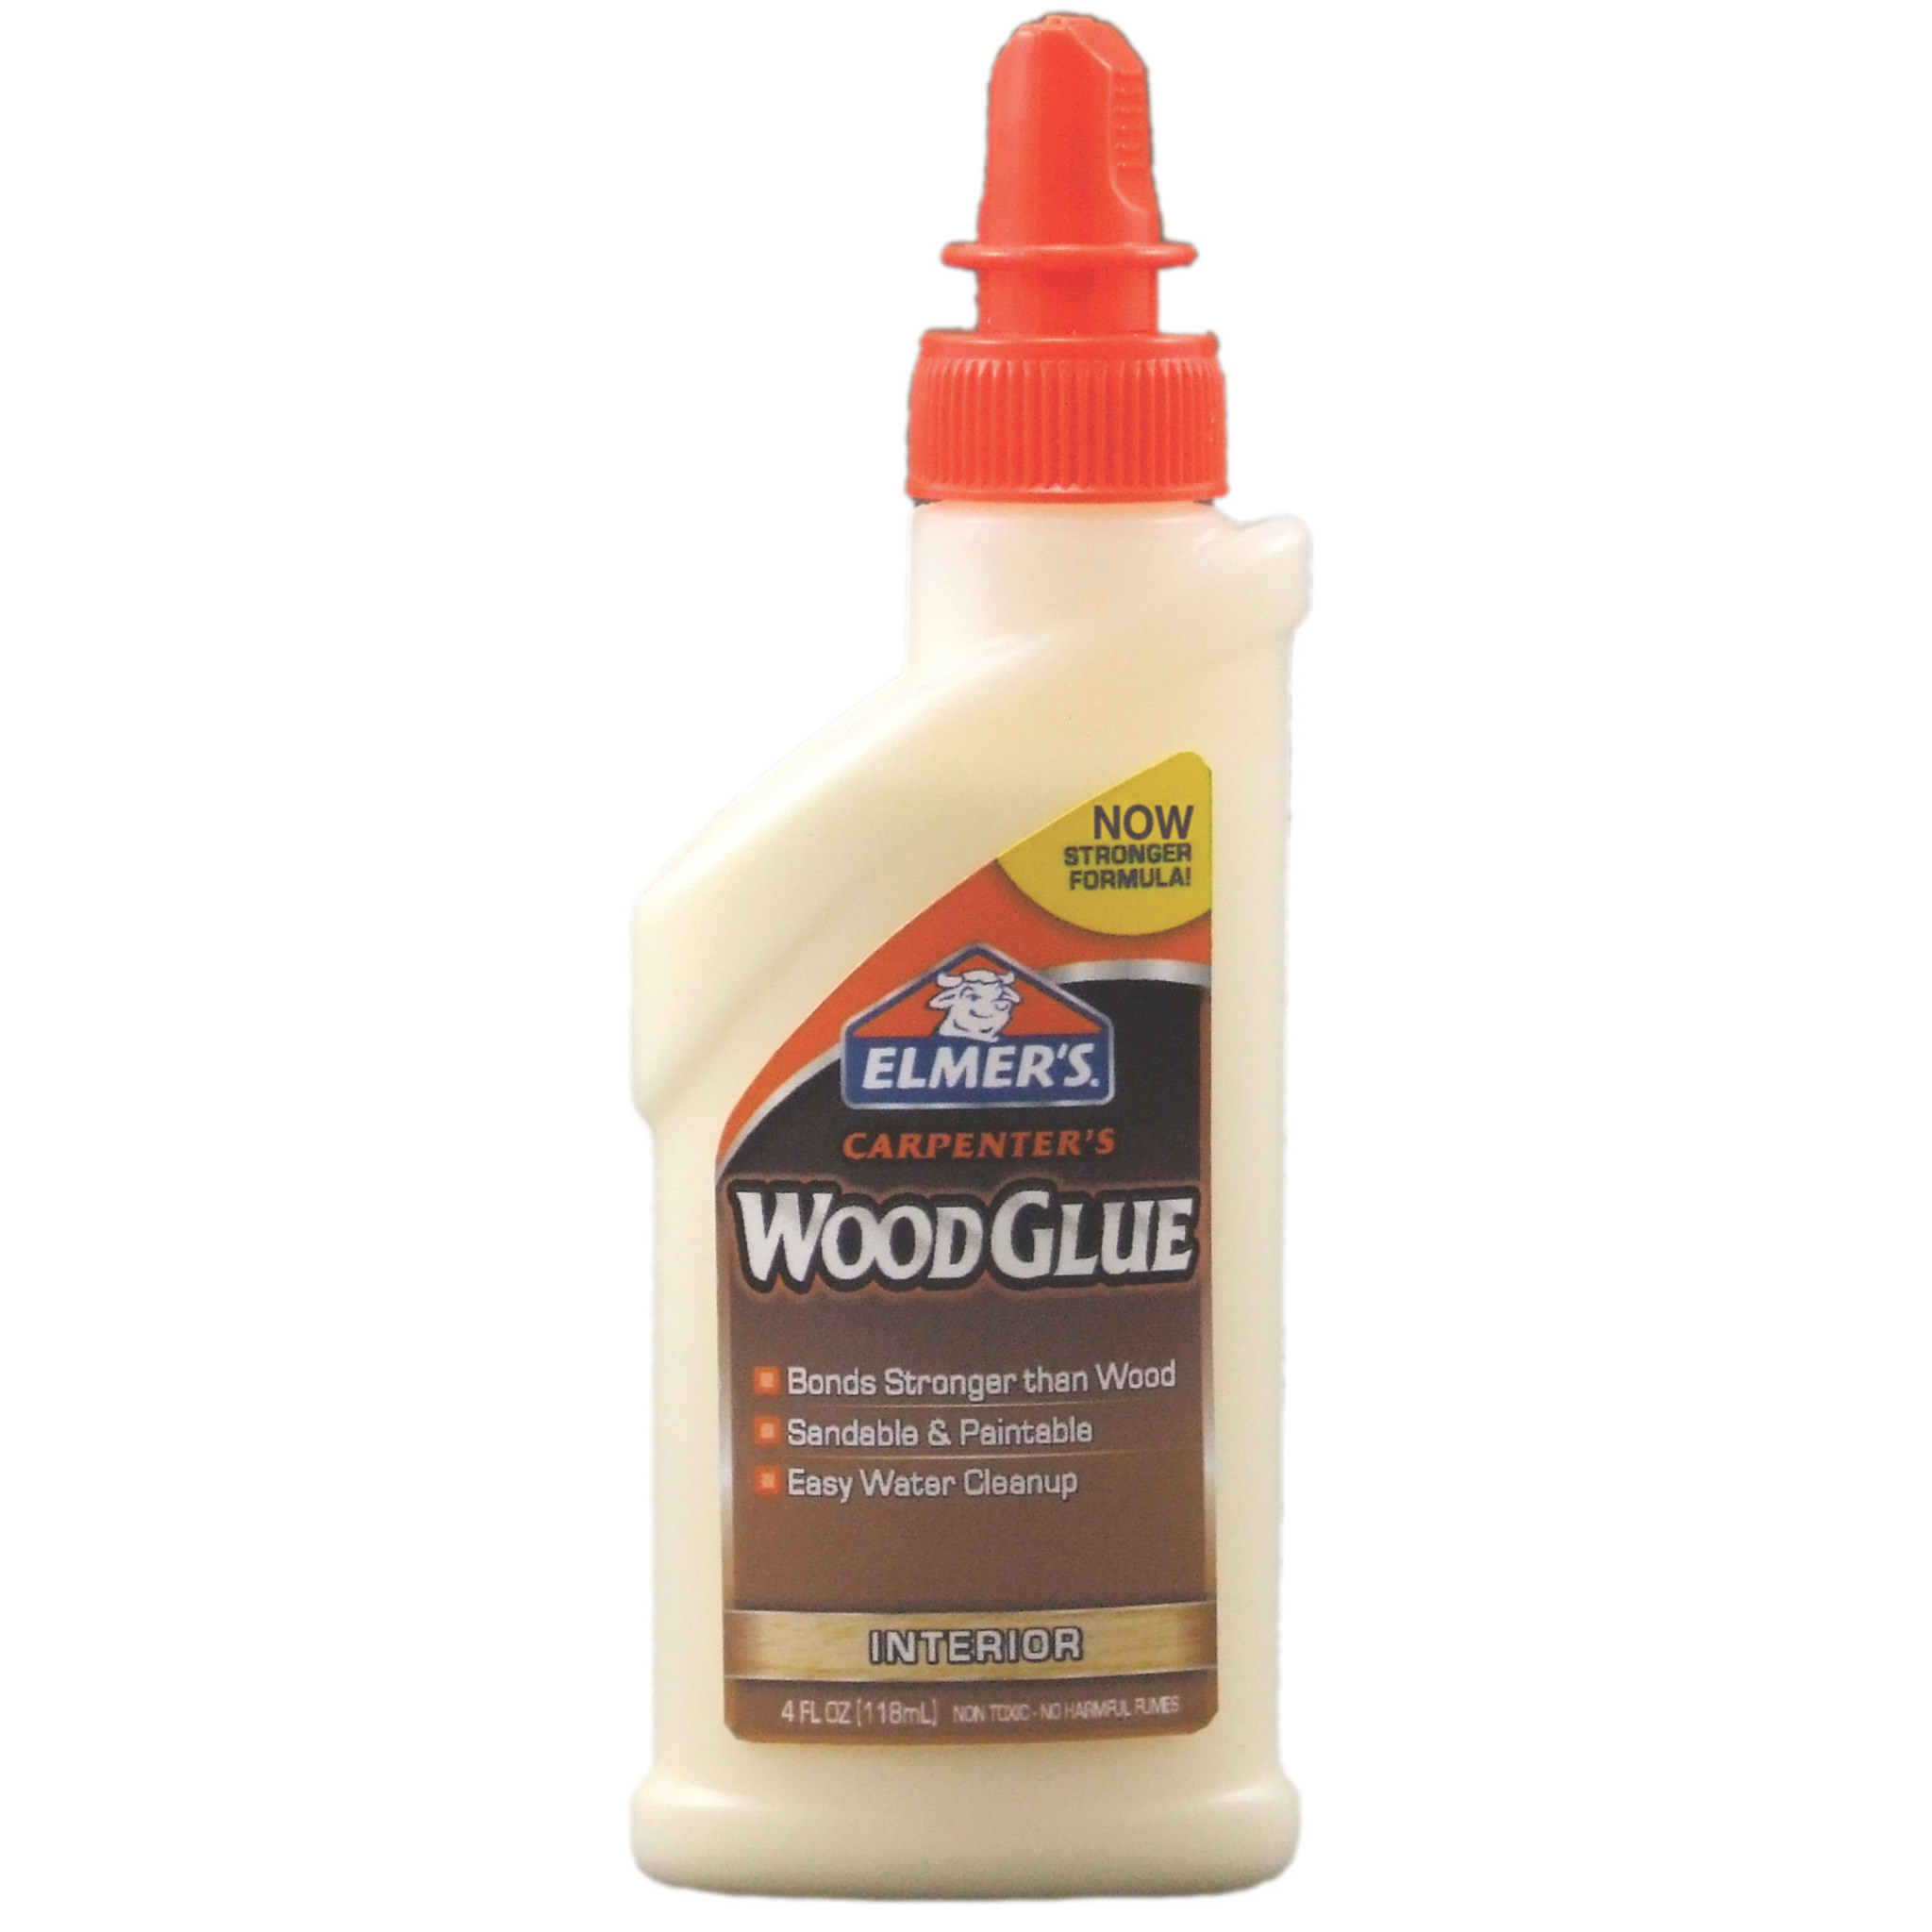 Elmer's Carpenter's Interior Wood Glue, 4 Oz. by Newell Brands